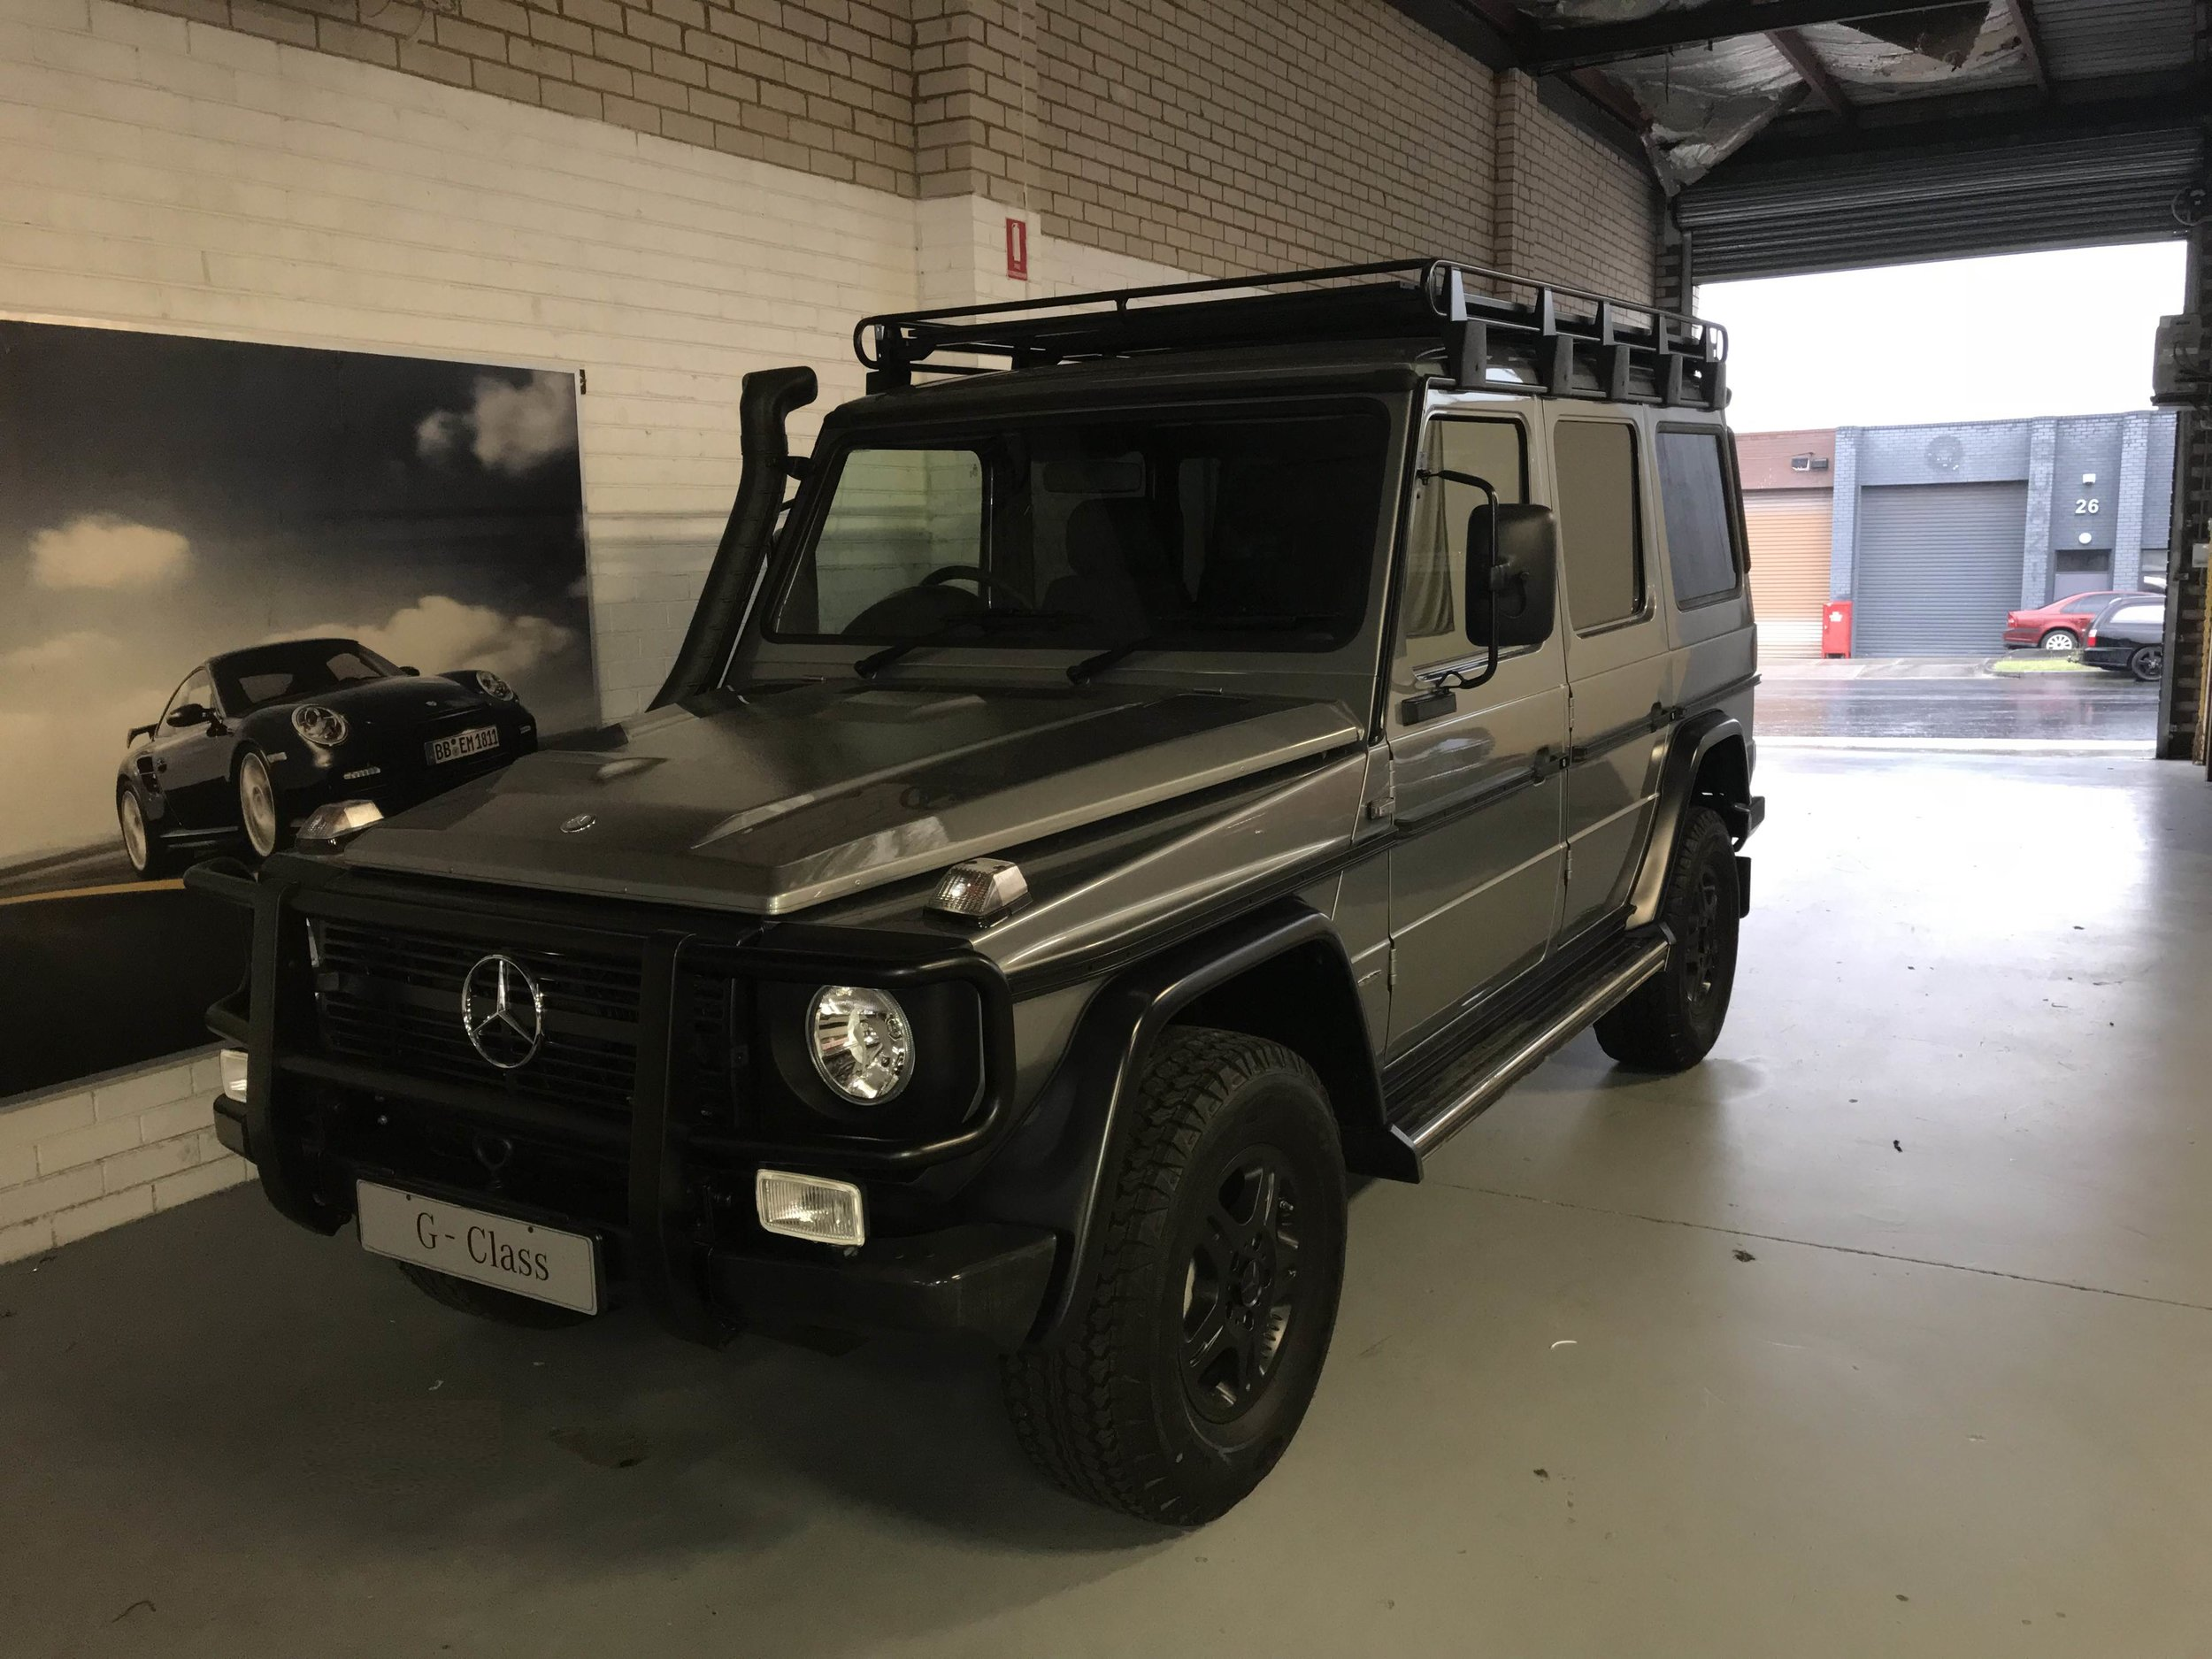 The rugged Mercedes G-Class